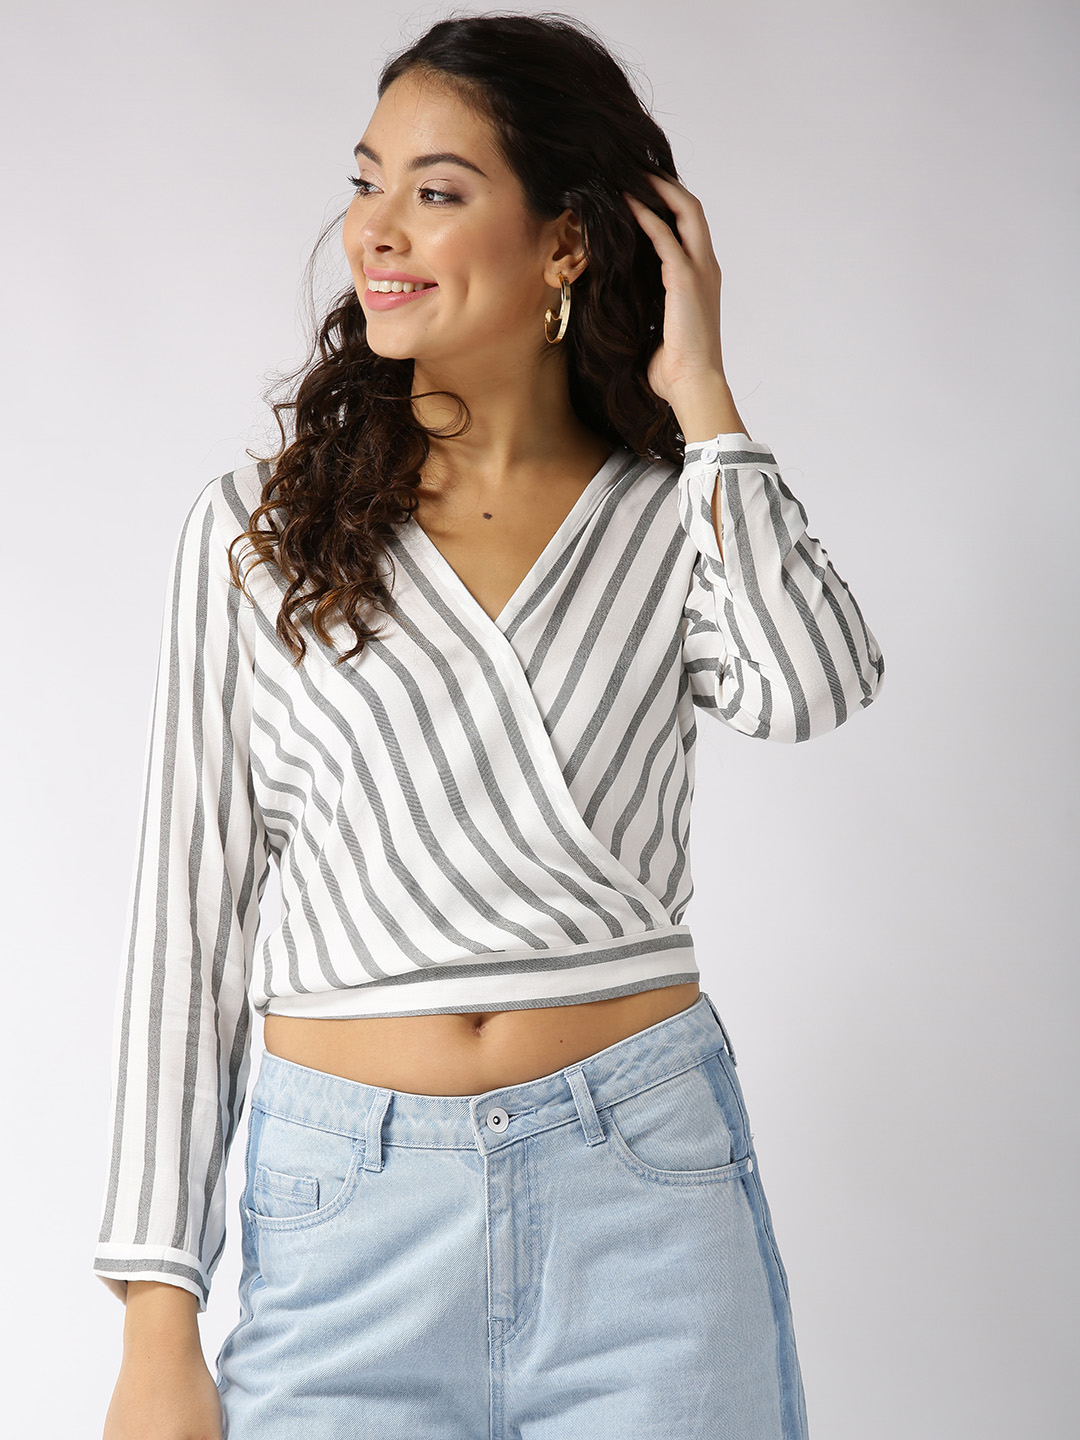 f2a30debde Long Sleeve Tops - Buy Long Sleeve Tops online in India